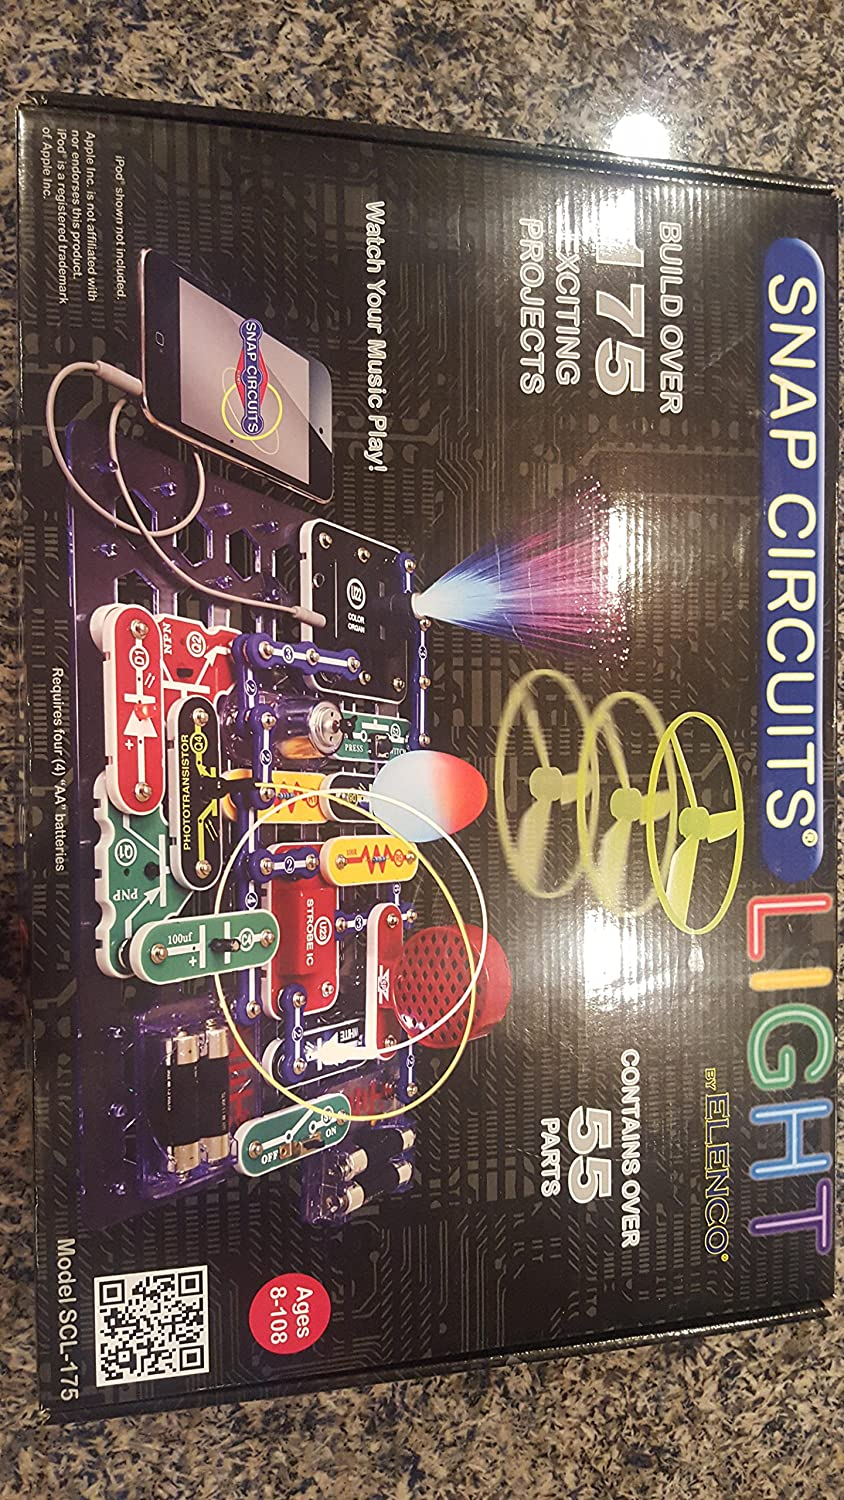 Elenco Snap Circuits Light Kit With Ac Adapter Set Buy Green Alternative Energy Online At Low Toys Games